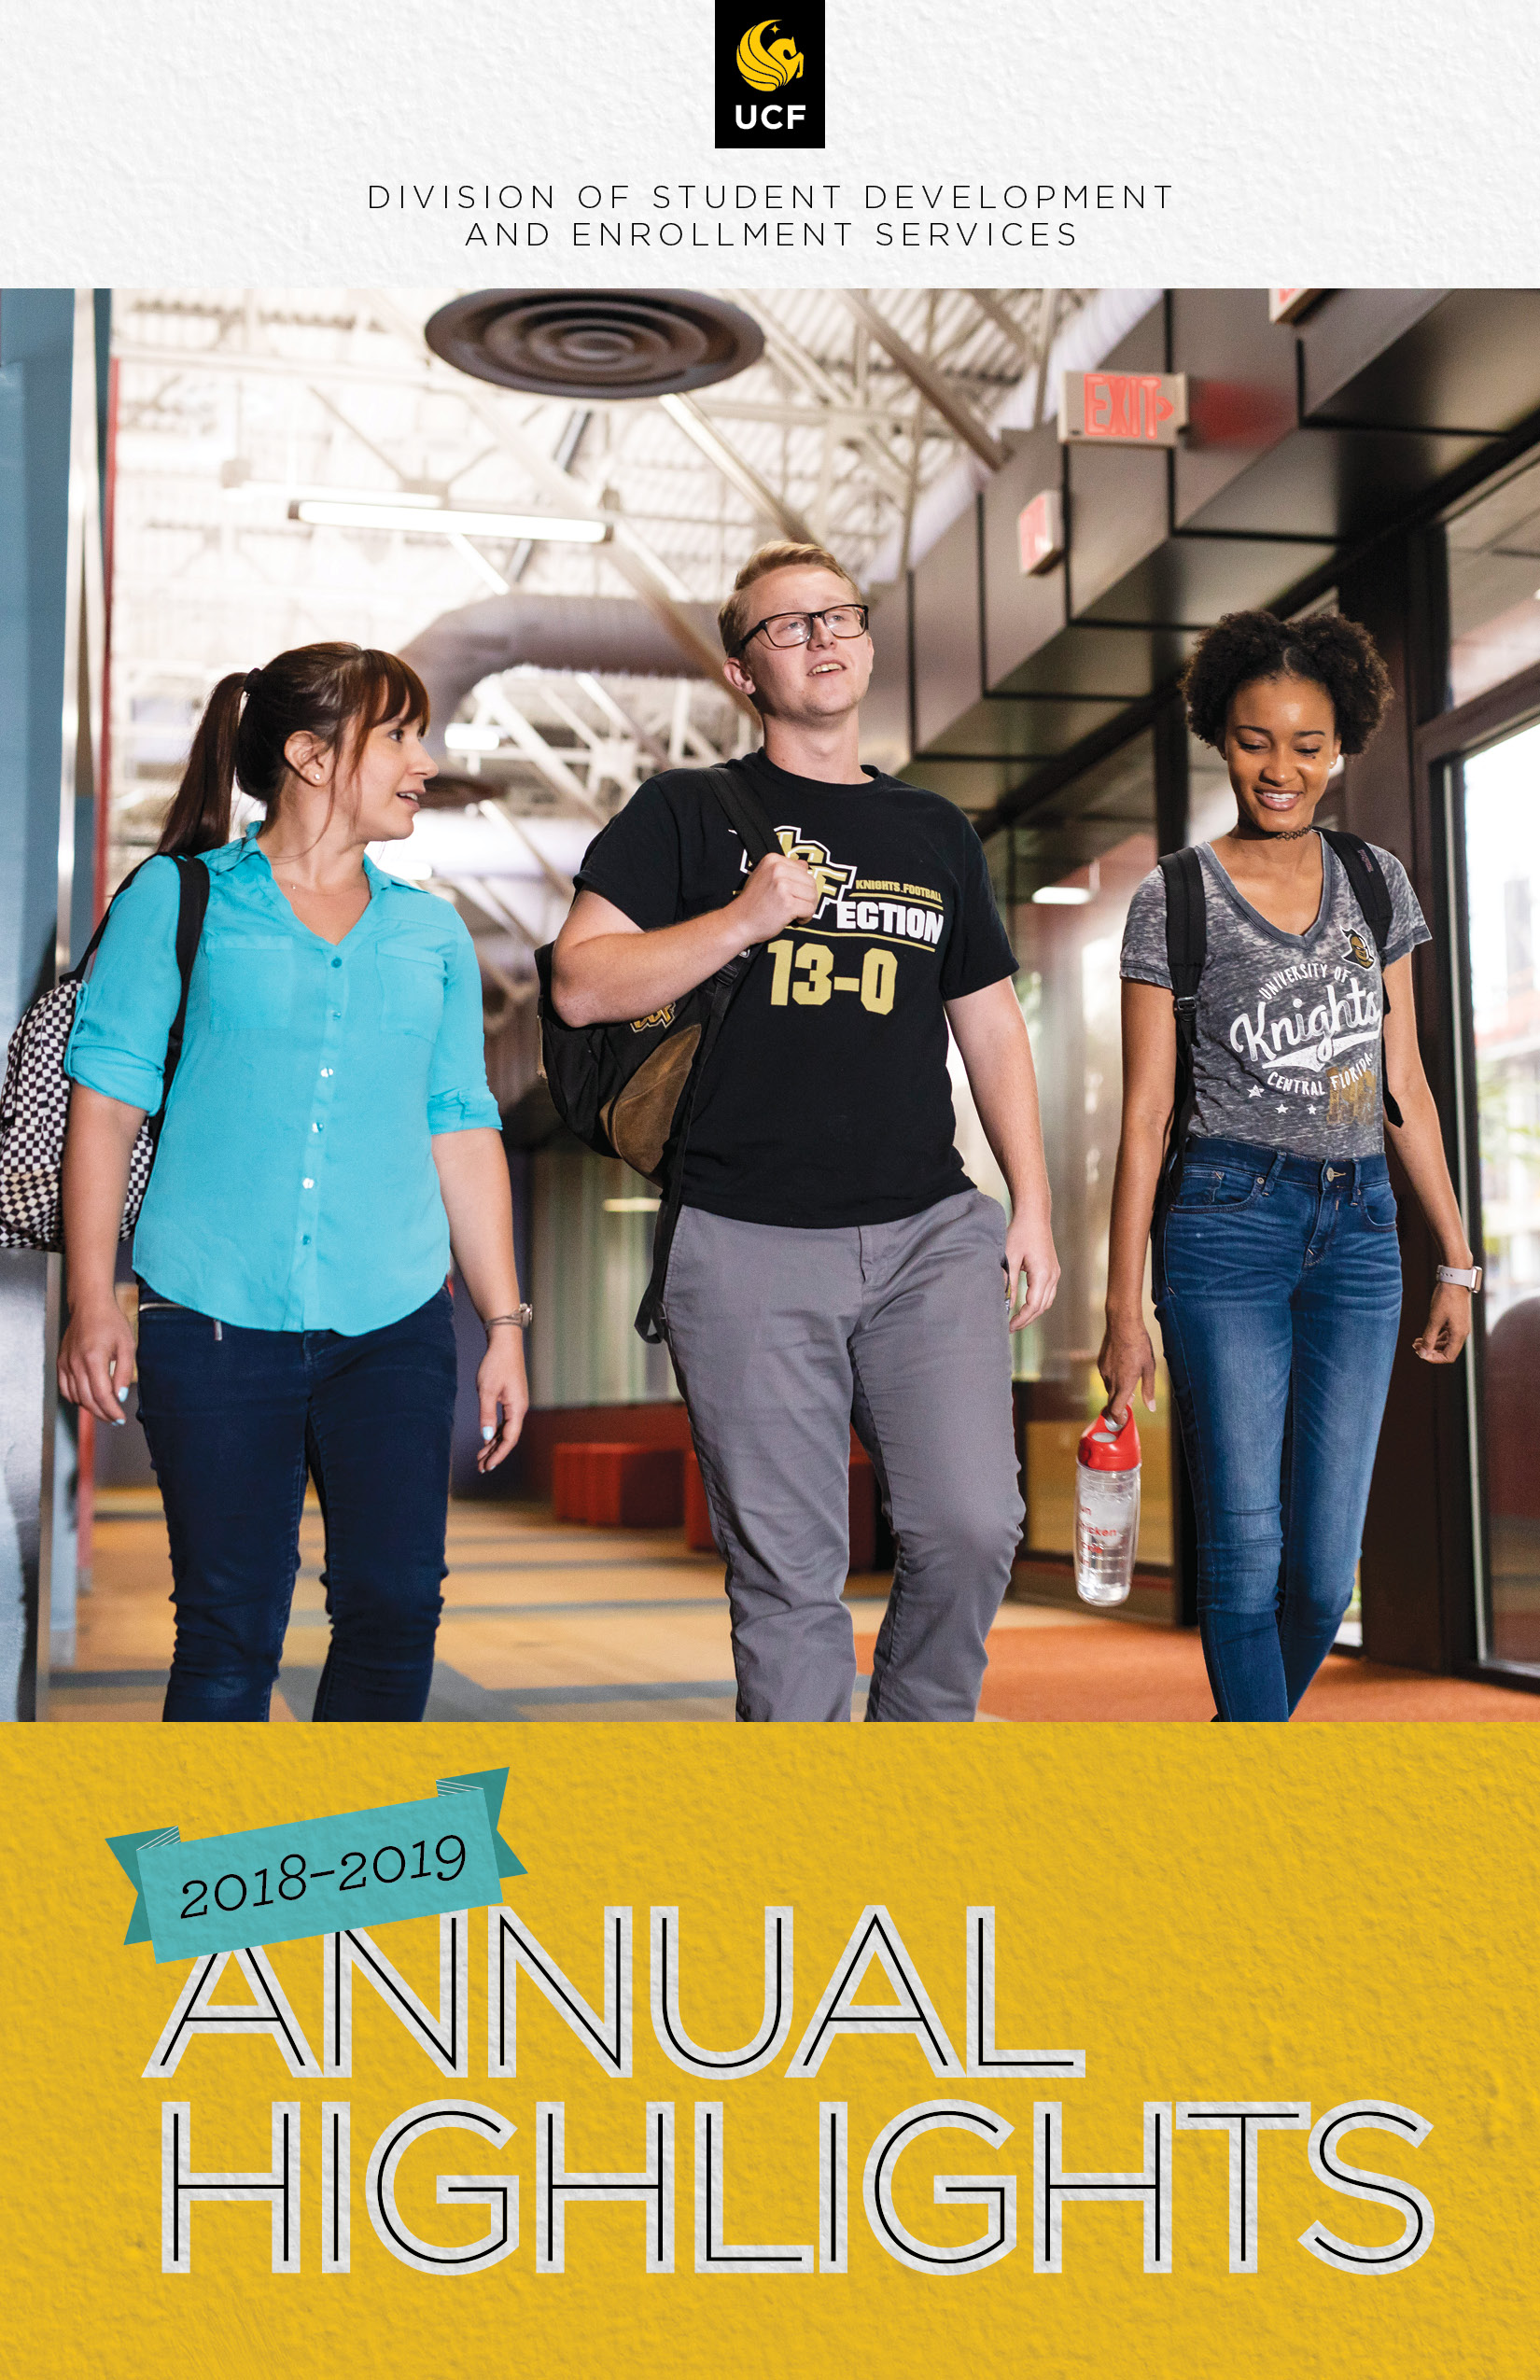 Cover of 2018-2019 Annual Highlights showing three students walking on campus